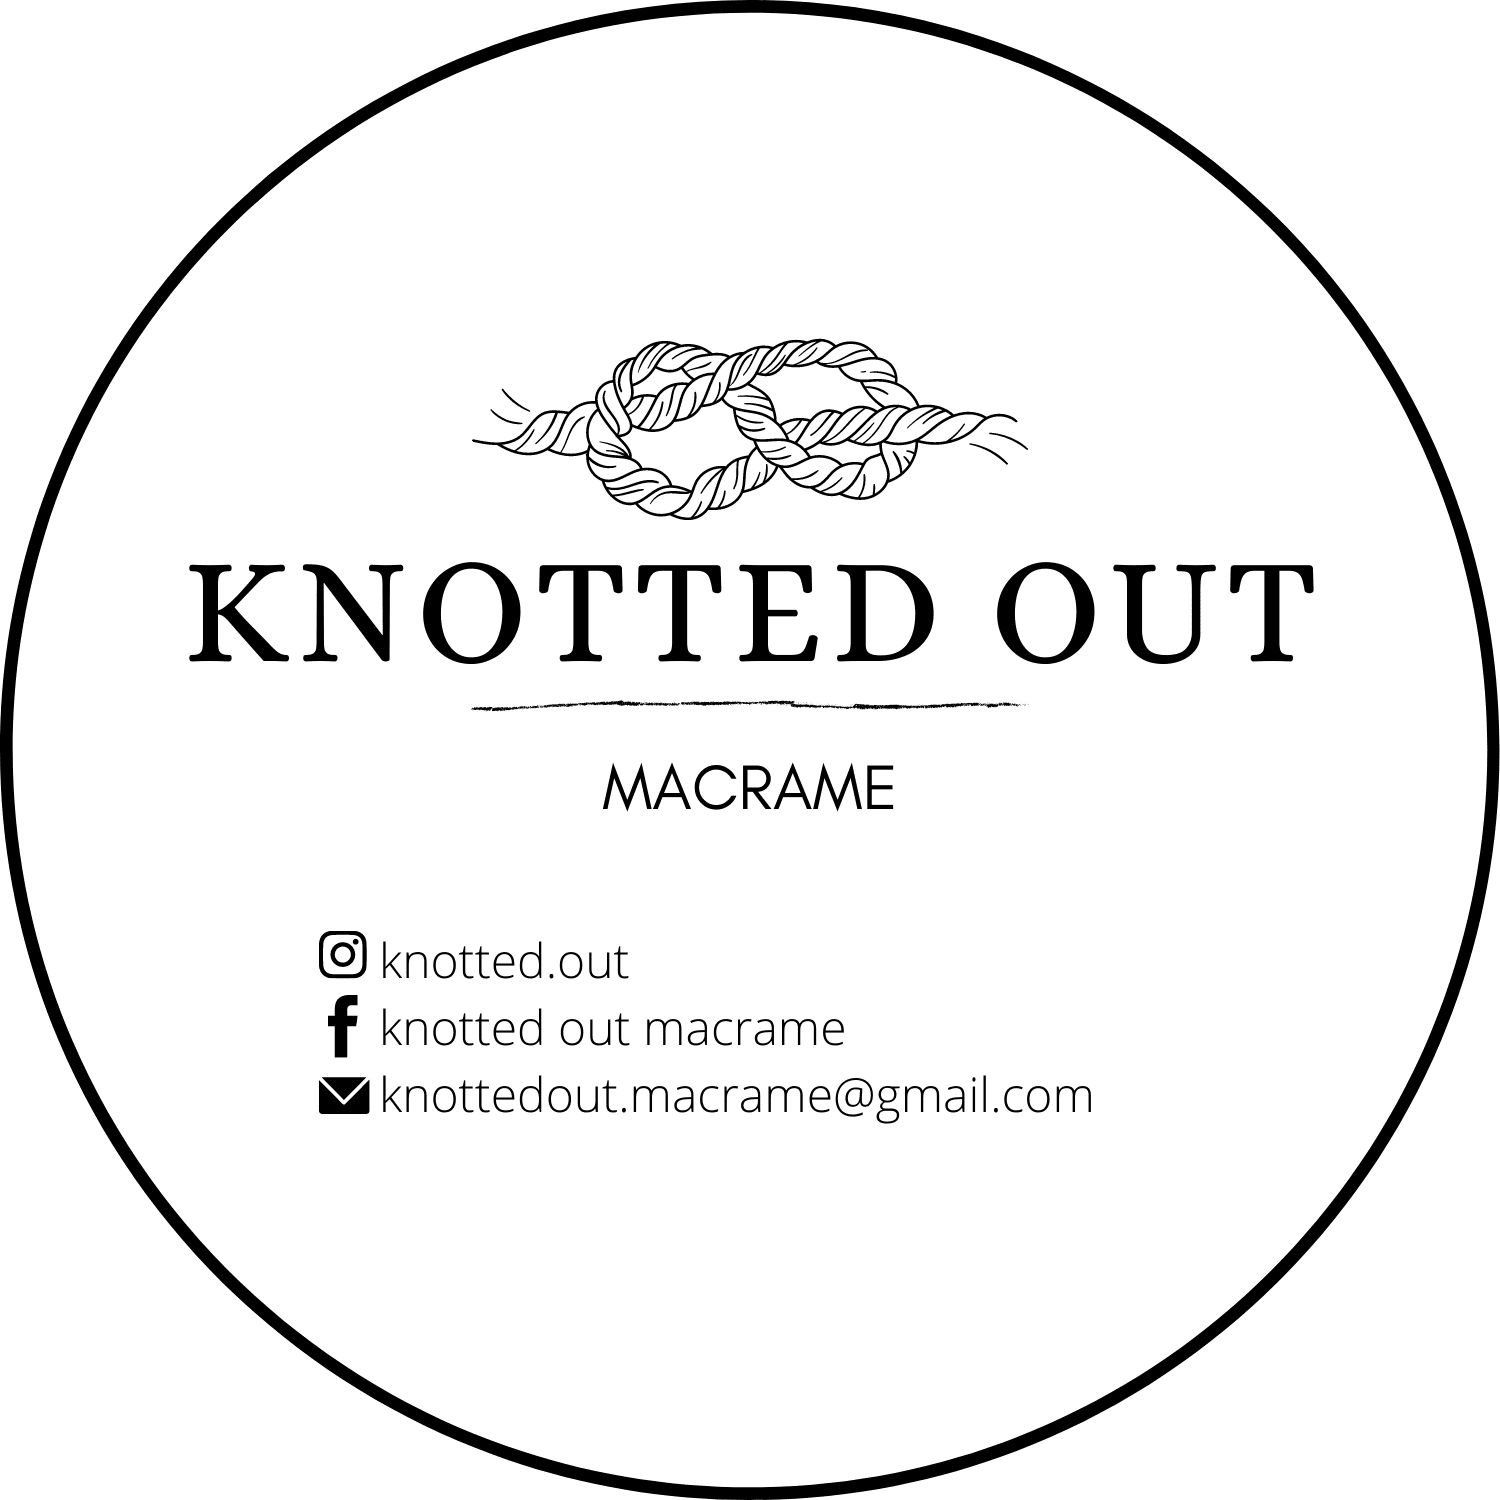 Knotted Out Macrame logo